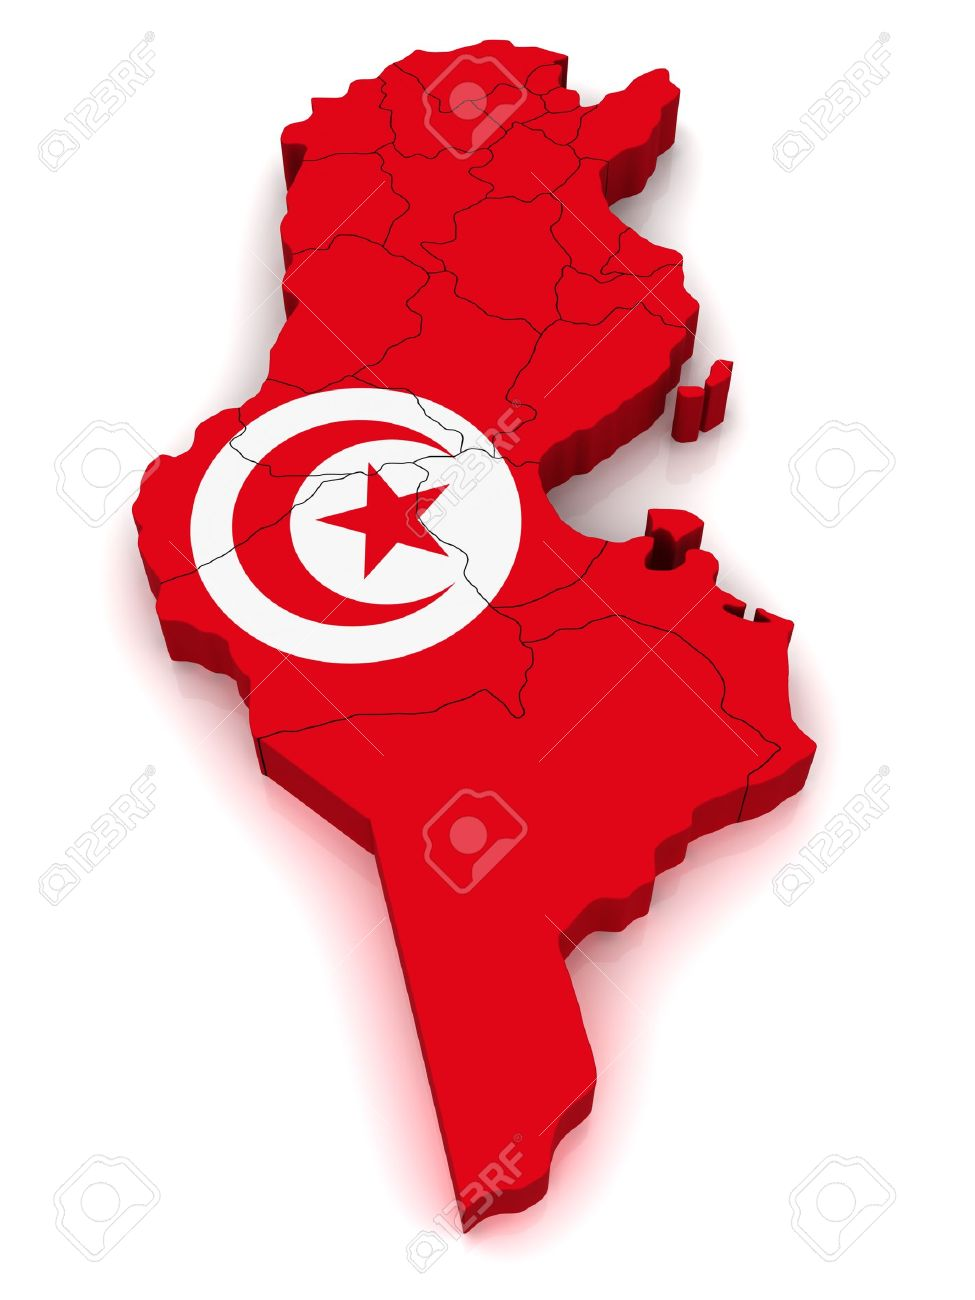 D Map Of Tunisia Stock Photo Picture And Royalty Free Image - Map of tunisia